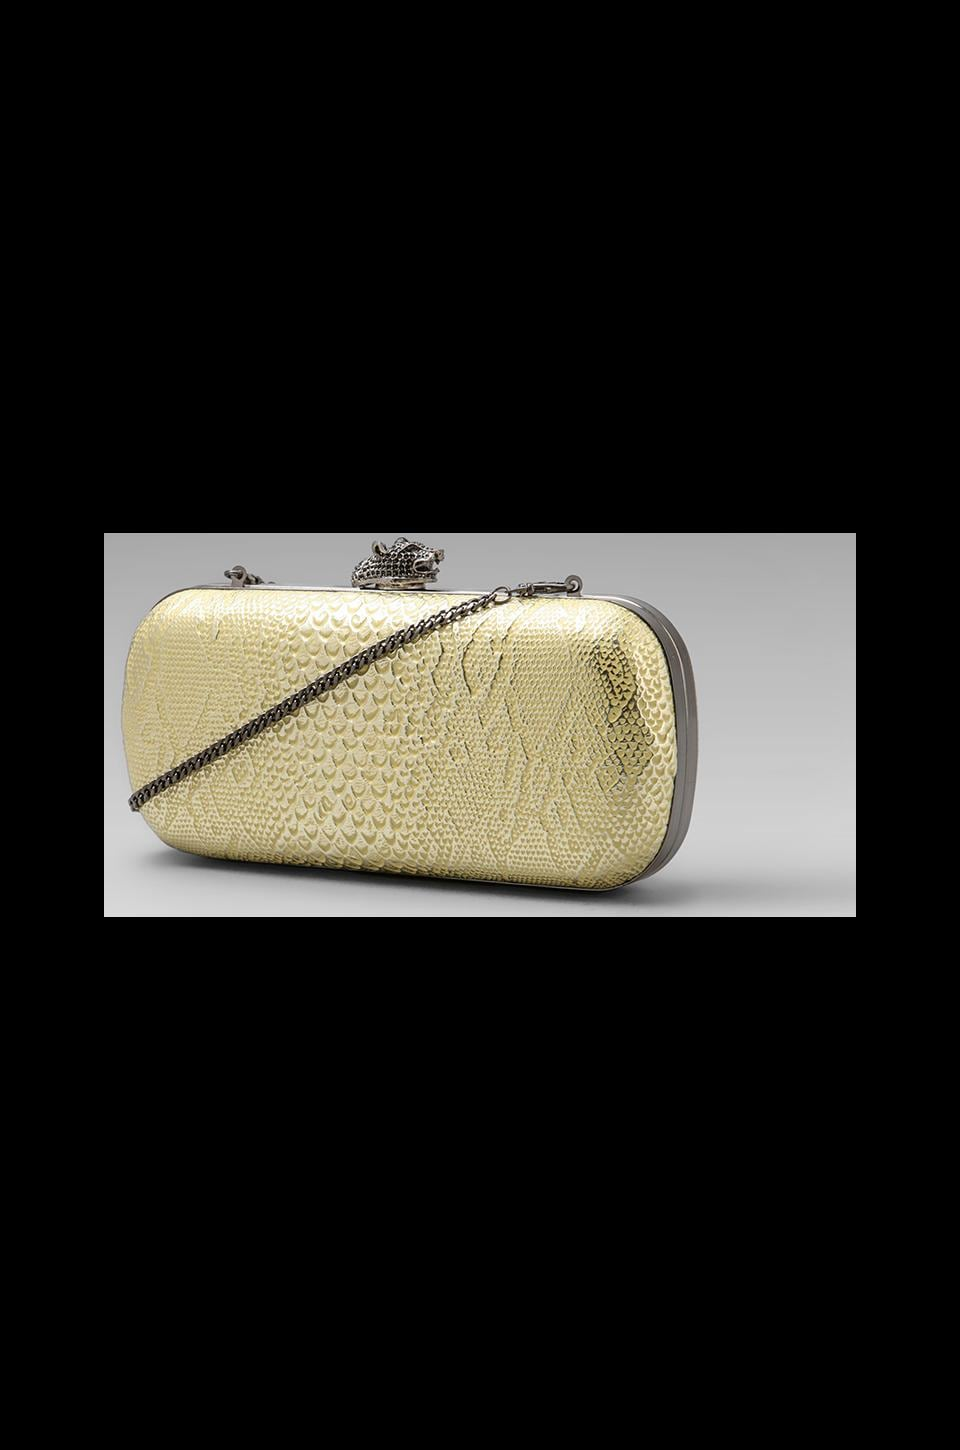 House of Harlow 1960 House of Harlow Addison Clutch in Pewter